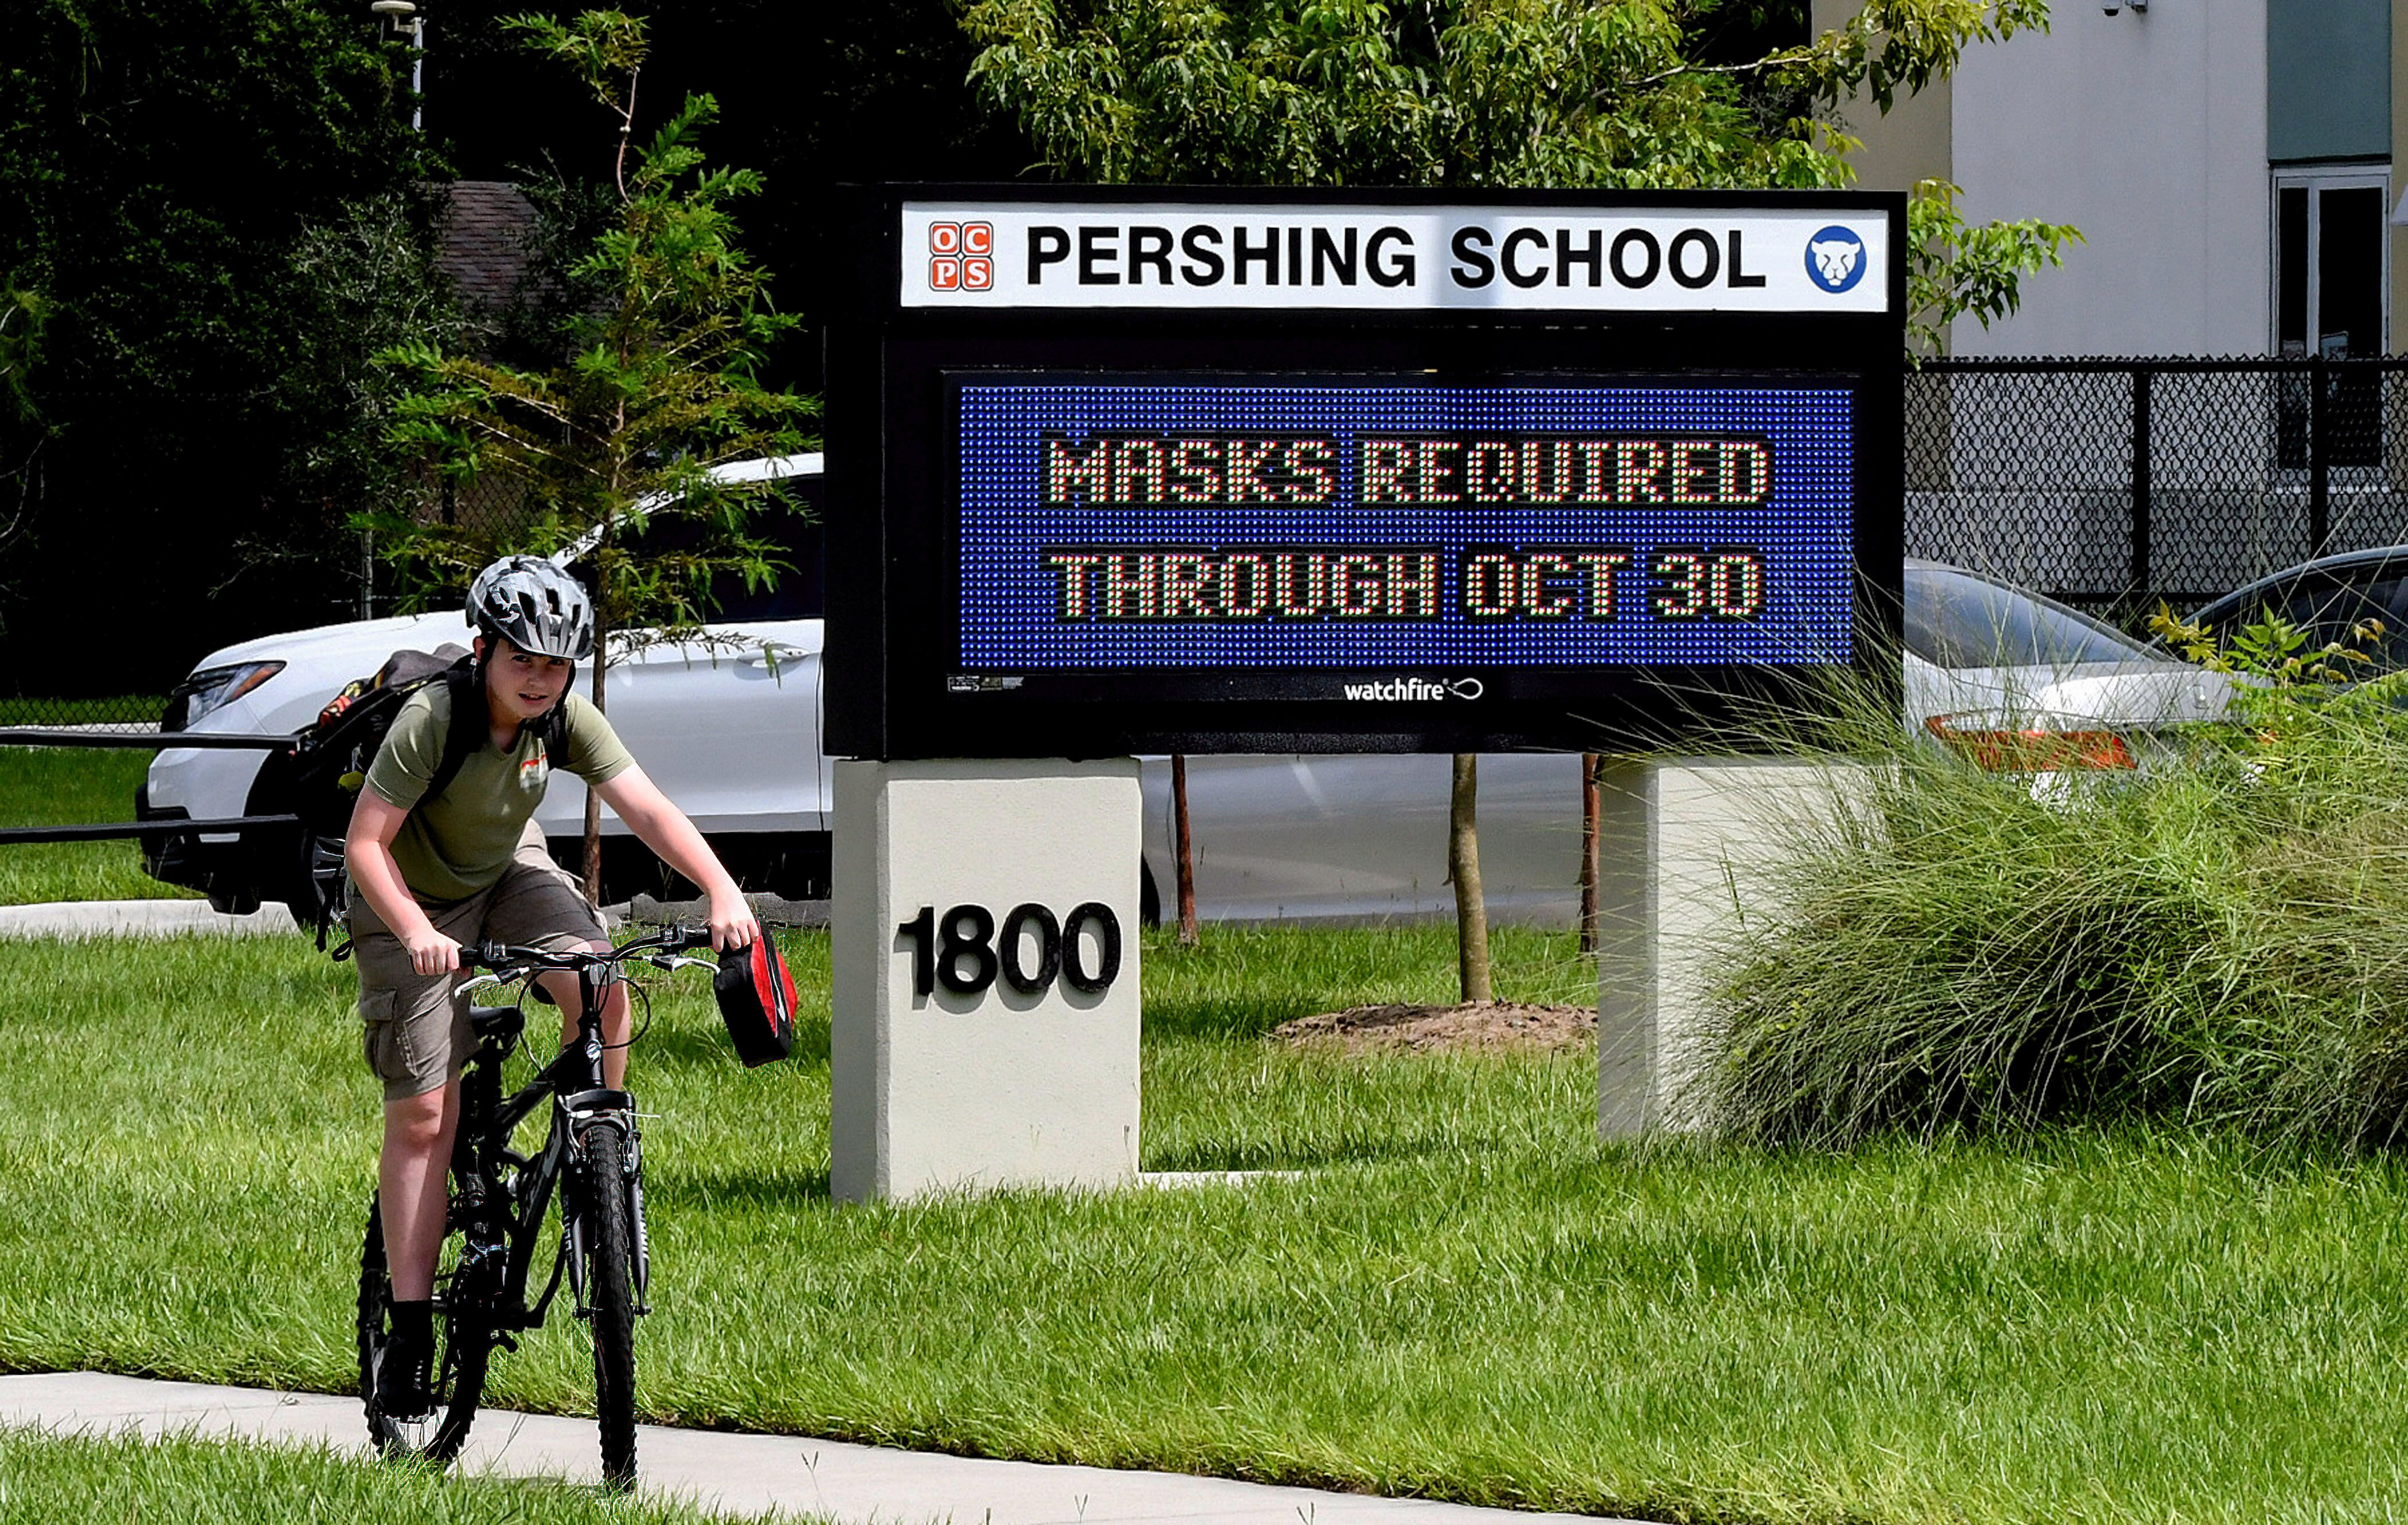 A sign at Pershing School in Orlando advises that face masks are required for students through Oct. 30. On Aug. 27, a Florida